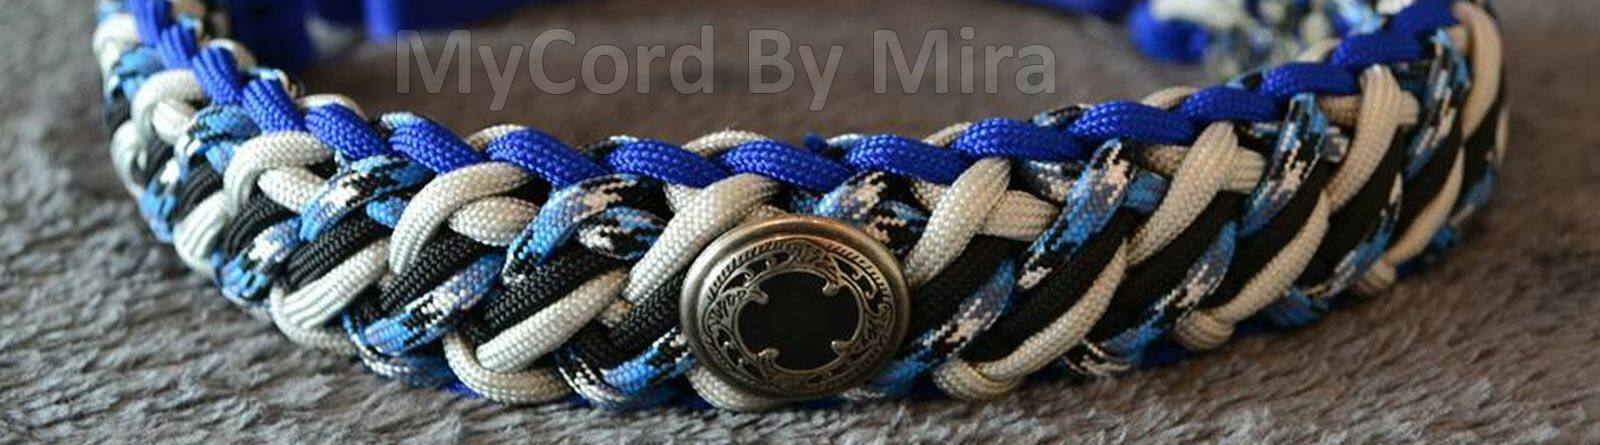 MyCord By Mira